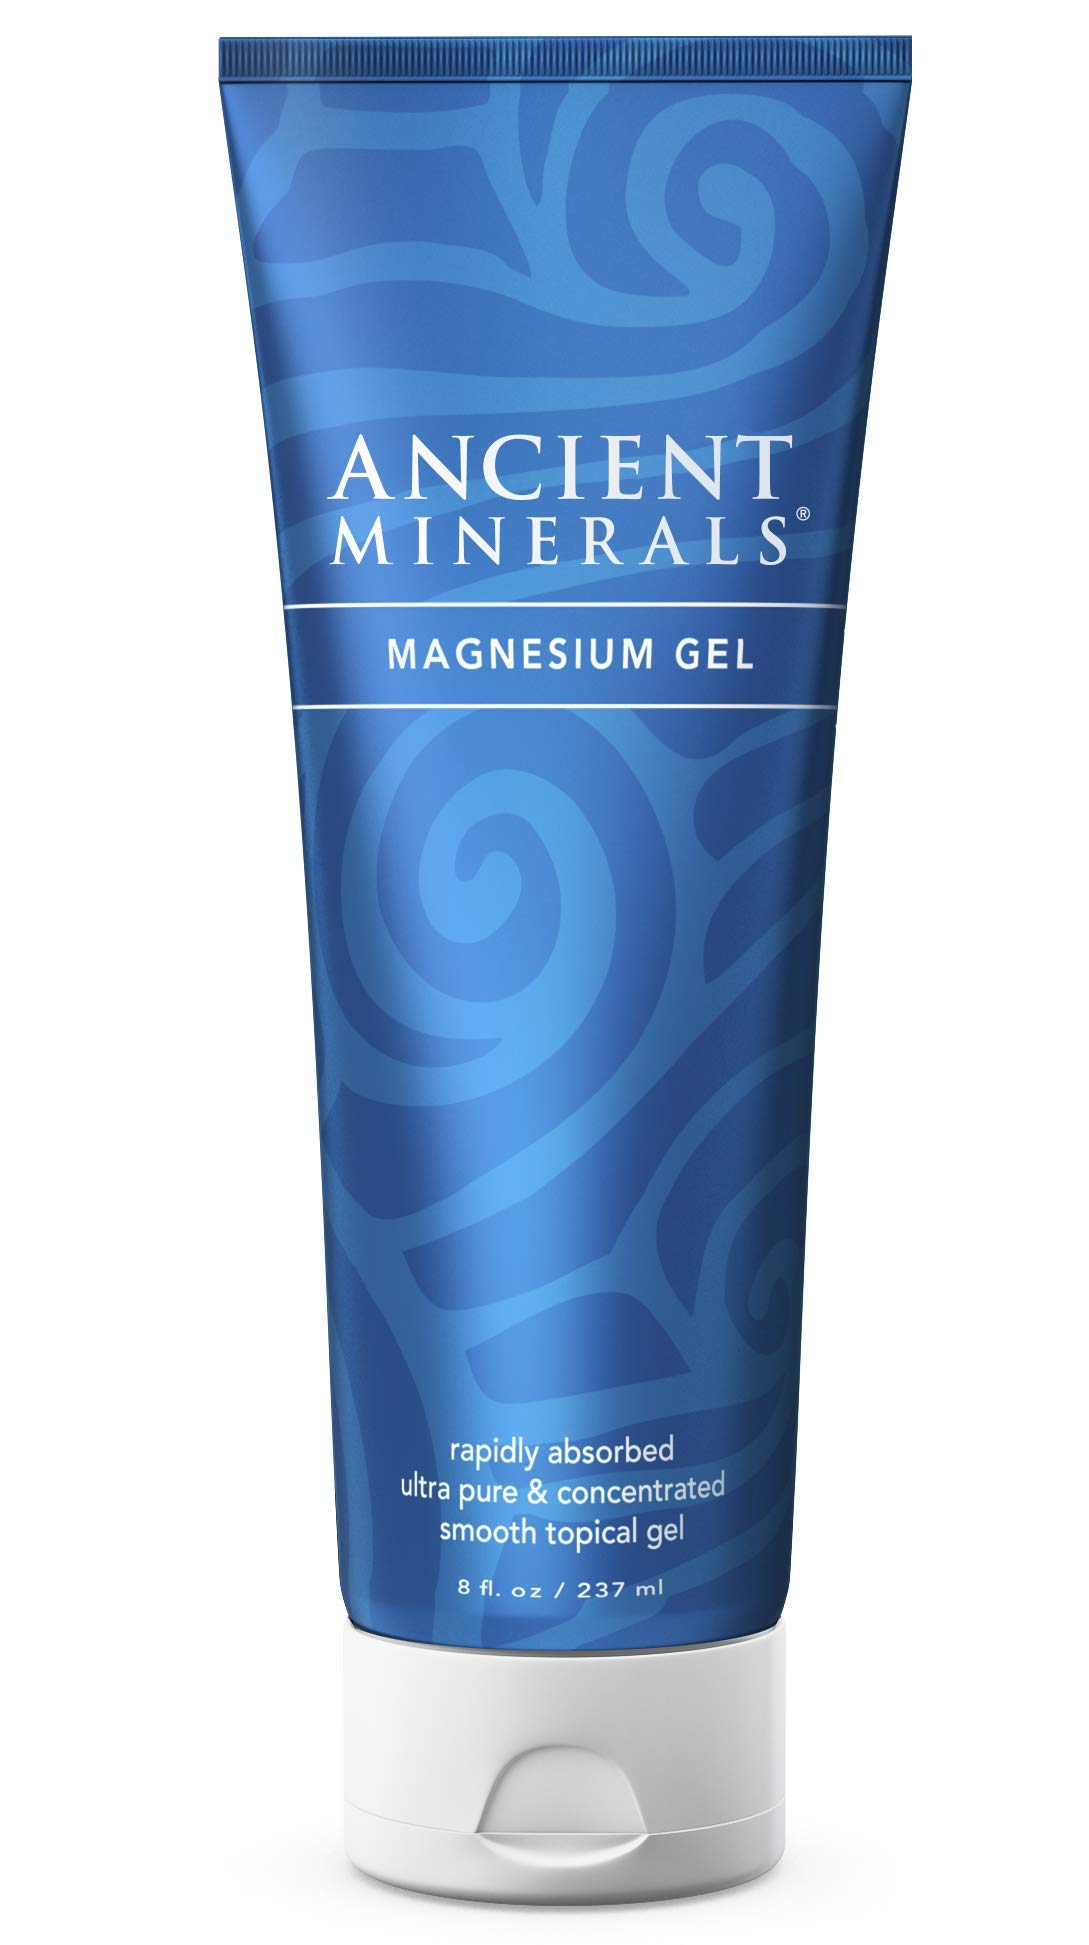 Ancient Minerals Magnesium Gel - Hydrating Magnesium Chloride Cream with Certified Organic Aloe Vera Barbadensis Leaf Juice (8oz)